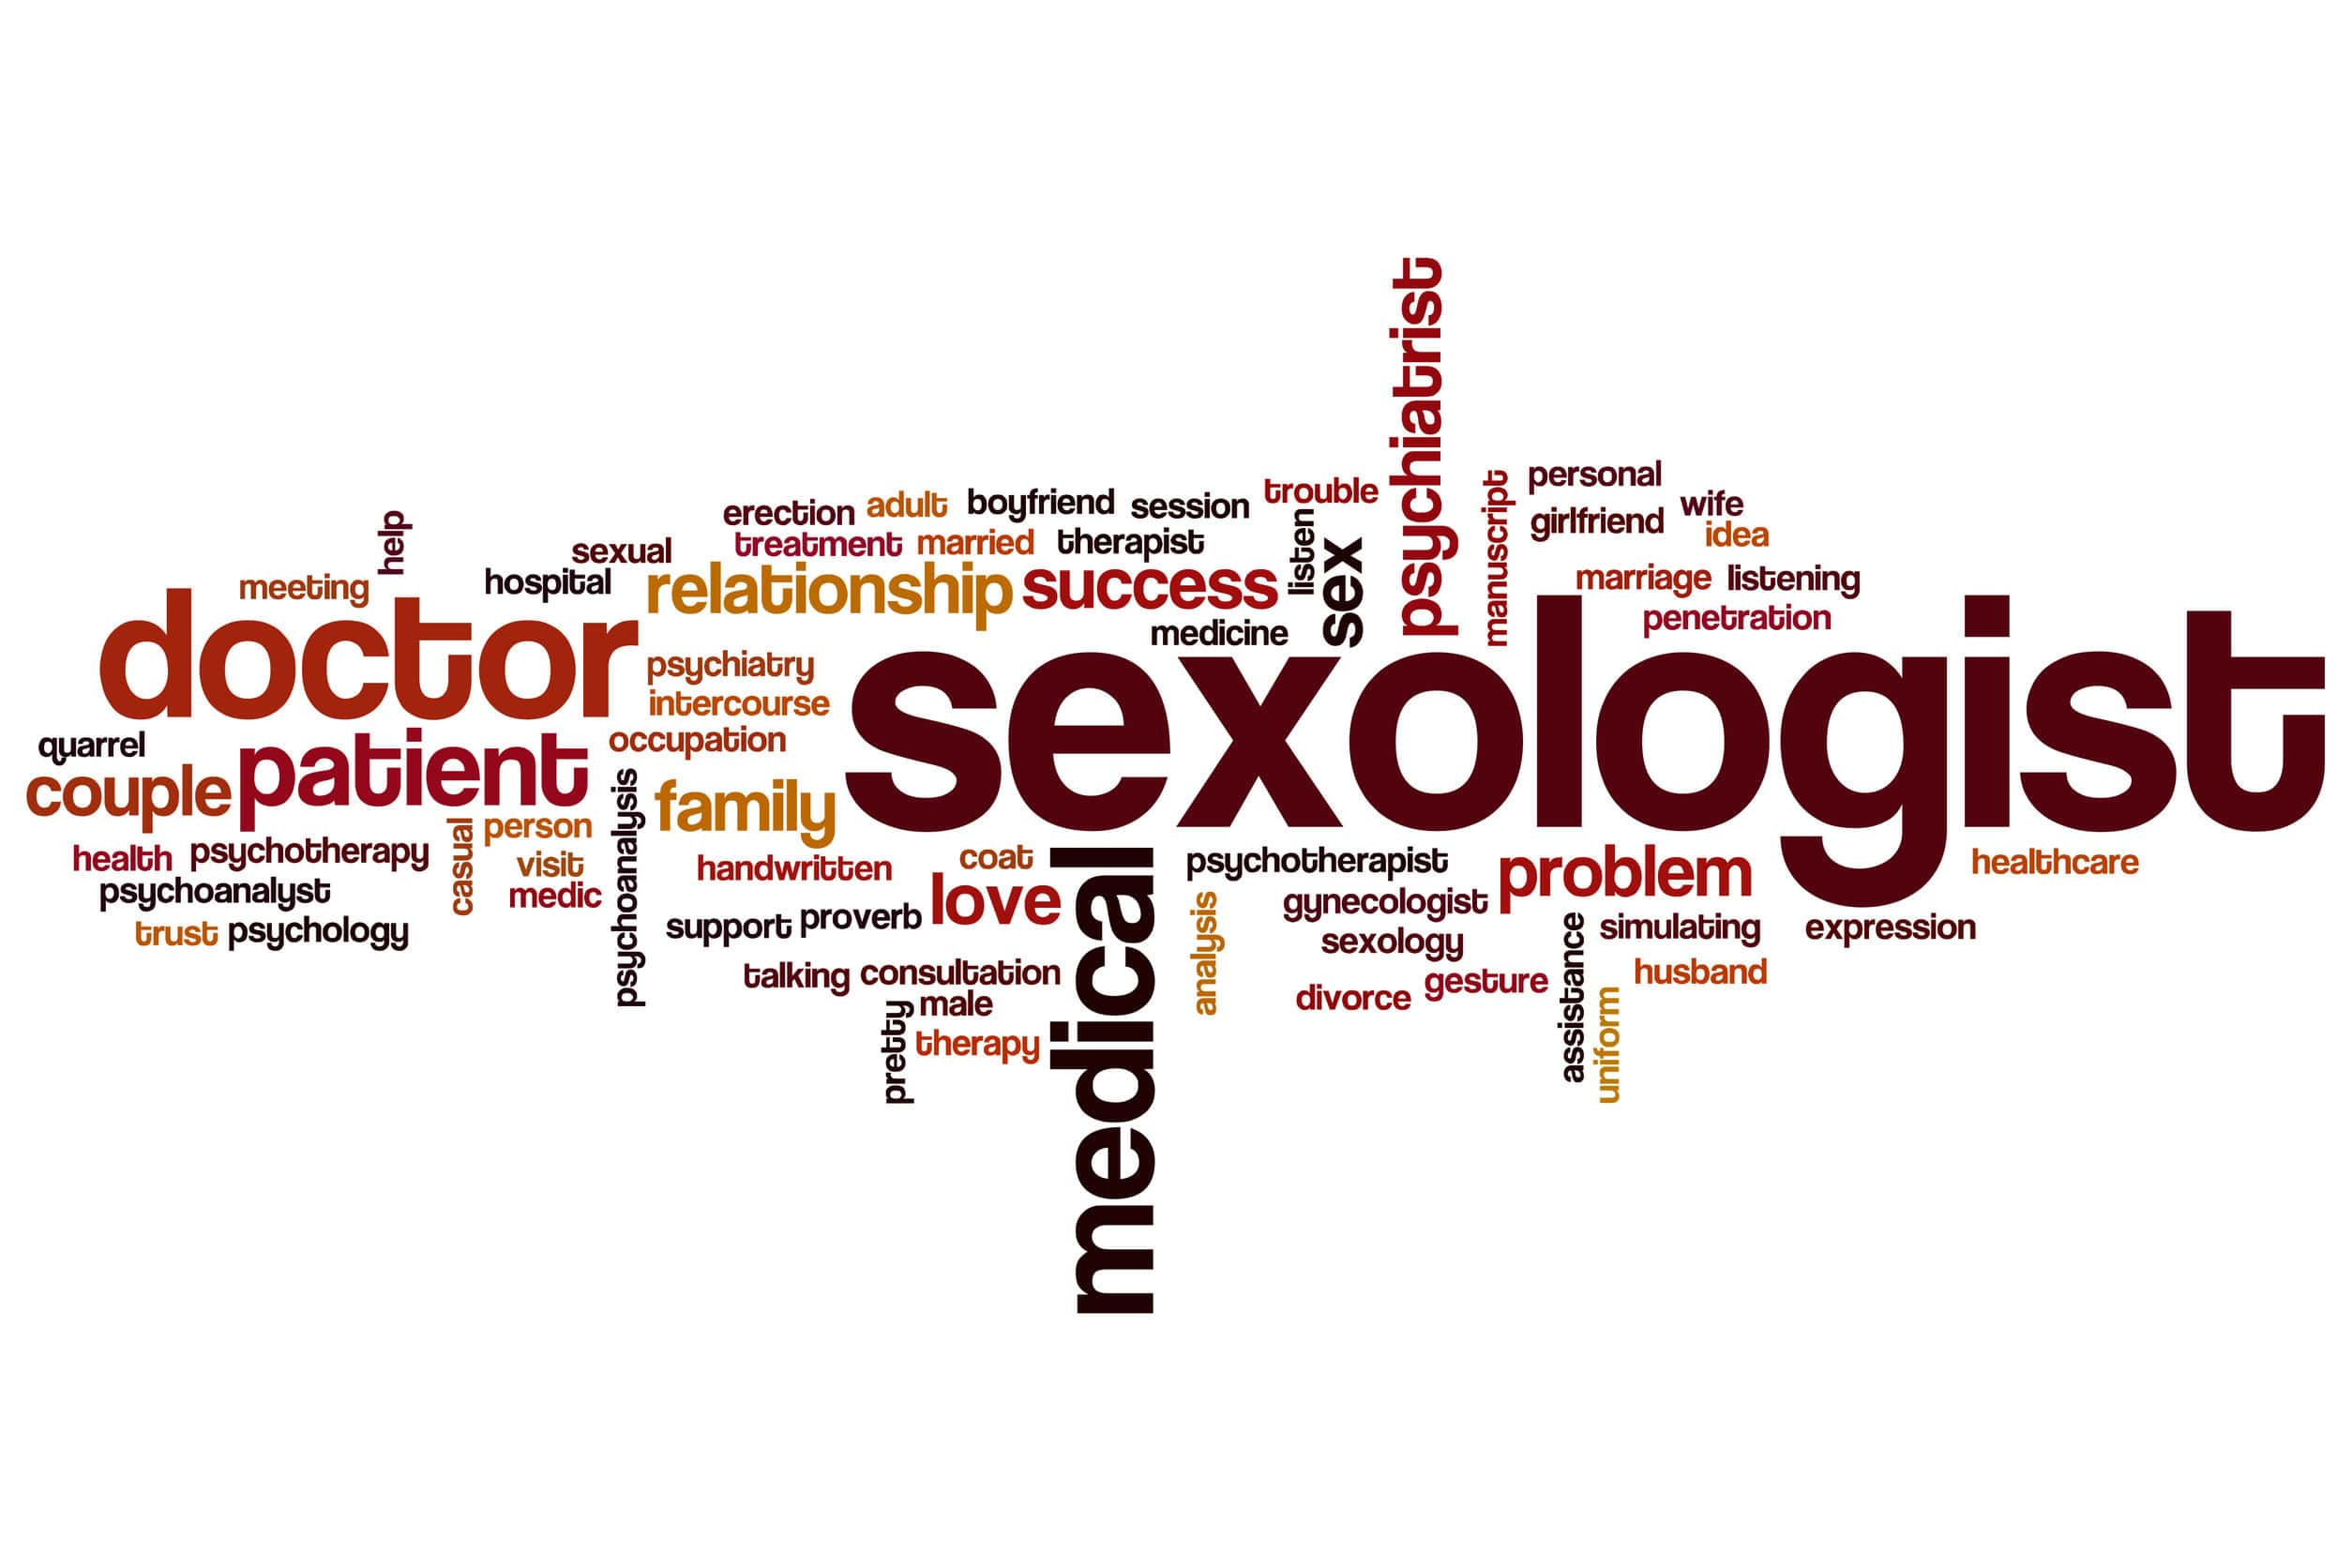 Why we should consult sexologists for a healthy sexual life